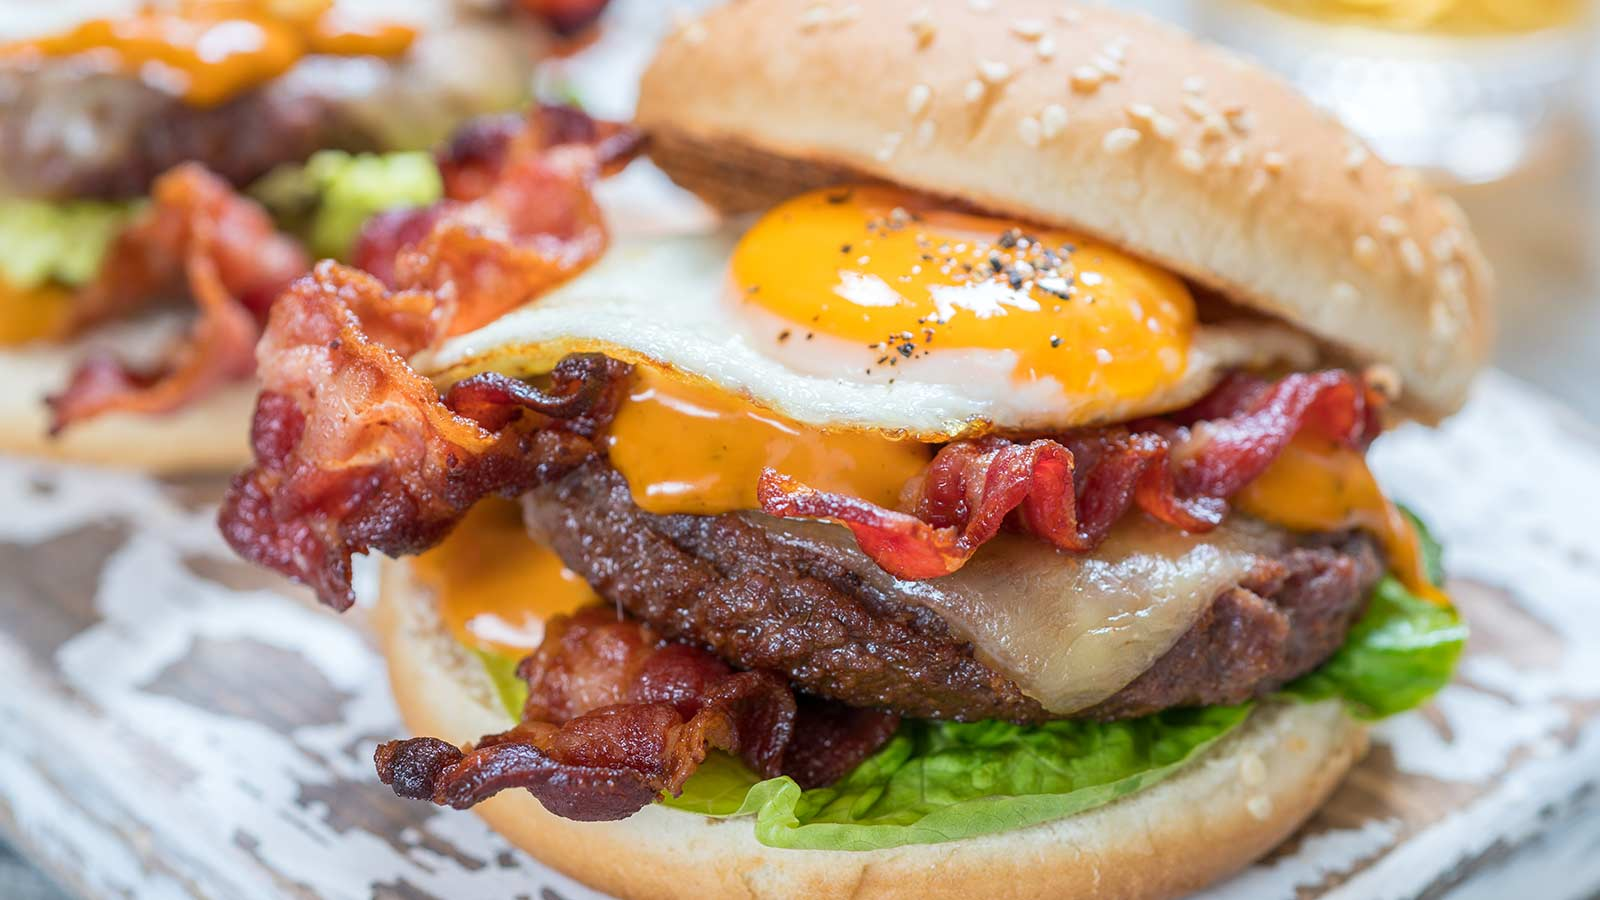 A hamburger topped with bacon and a fried egg.